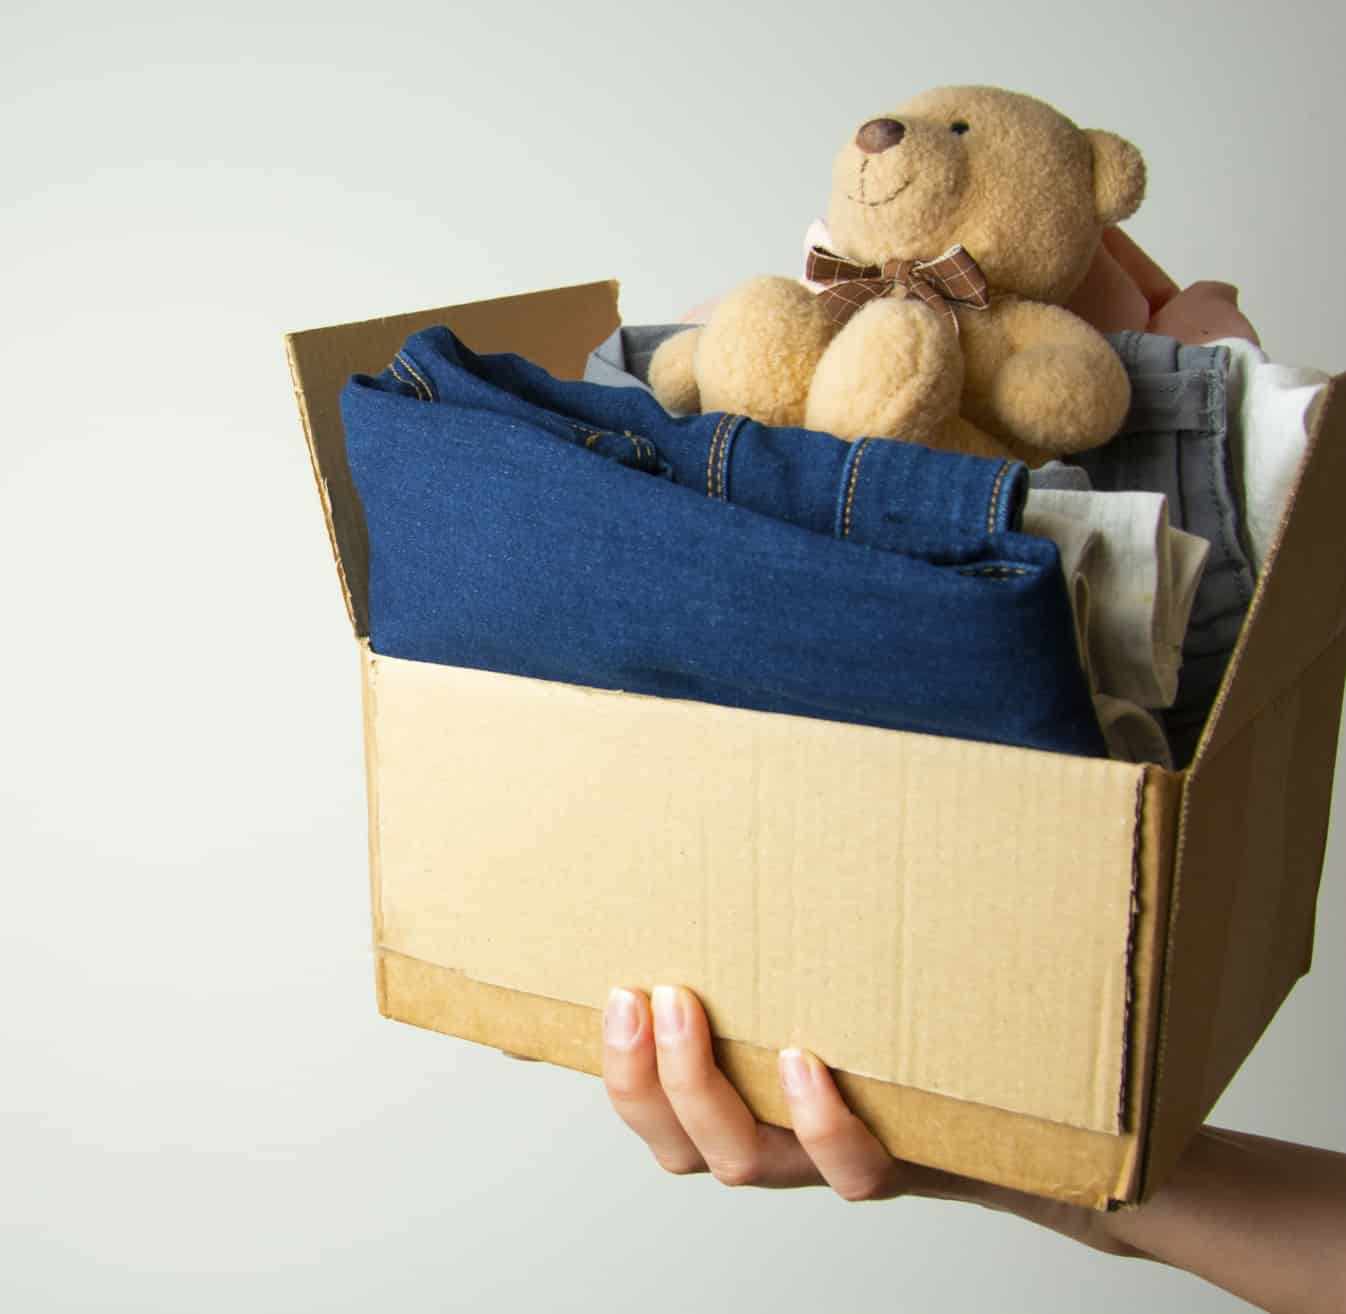 Donation concept. Hands holding donate box with clothes. Copy space.